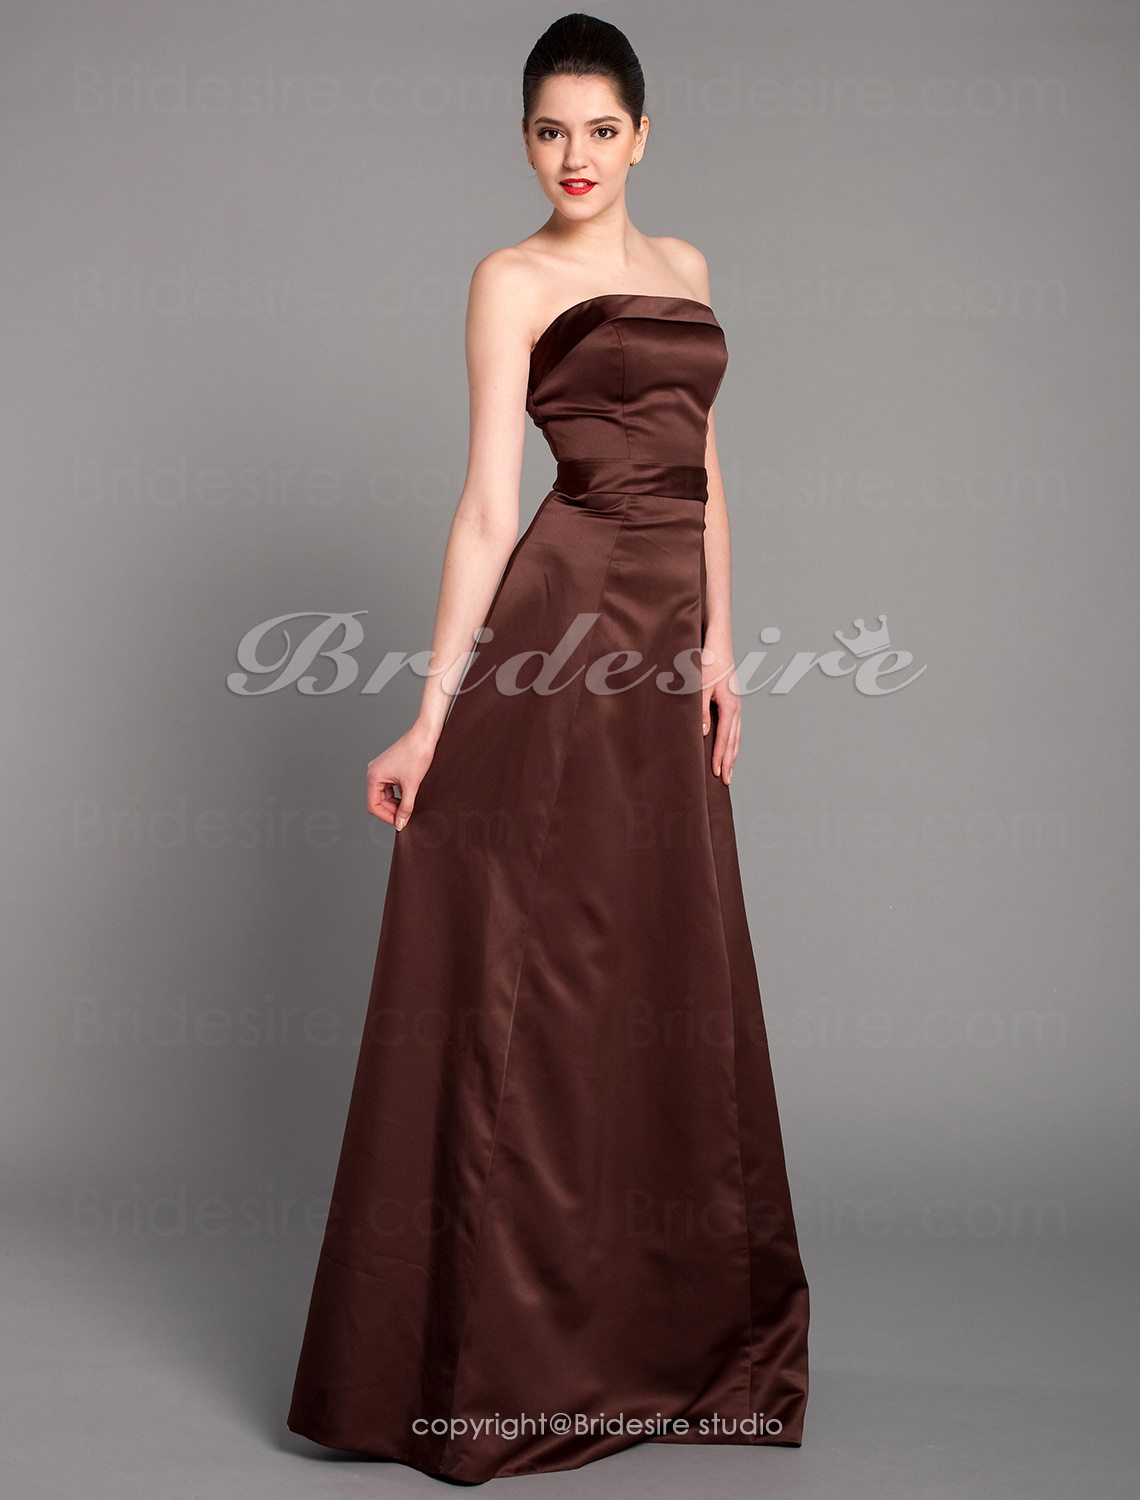 A-line Sleeveless Spaghetti Straps Satin Ankle-length Bridesmaid Dress